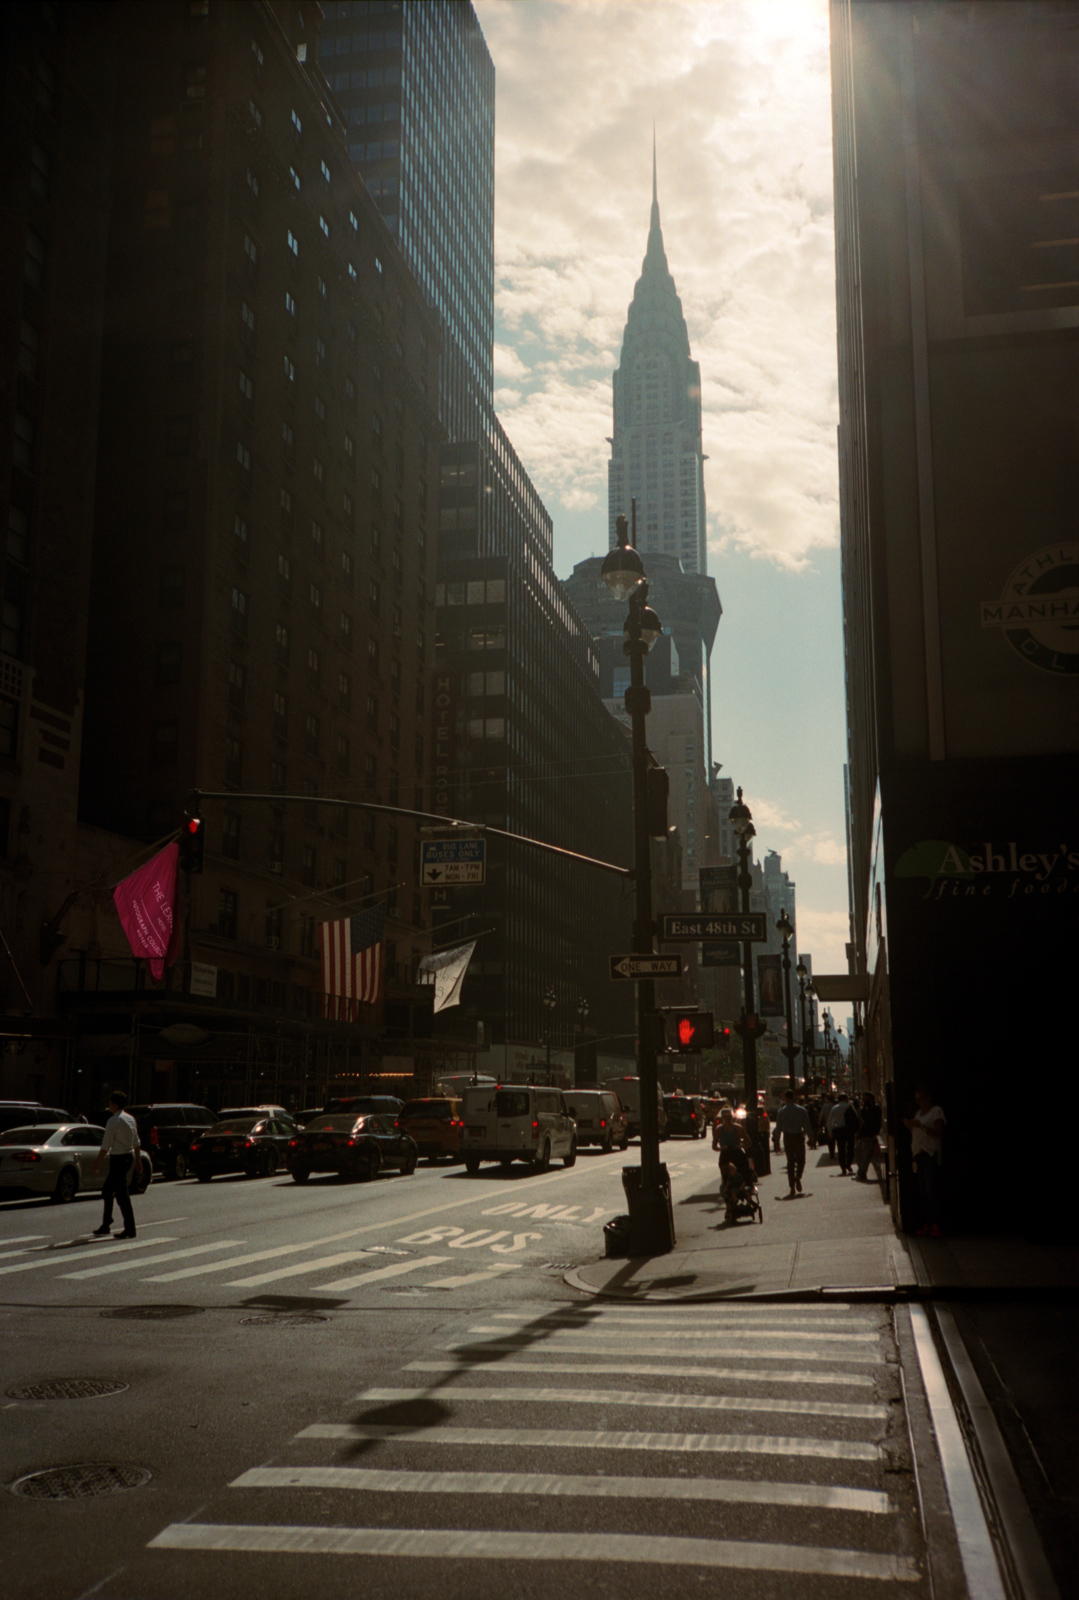 Empire State Building downtown Manhattan. Lonely New York Series. Photography By Ioannis Koussertari.